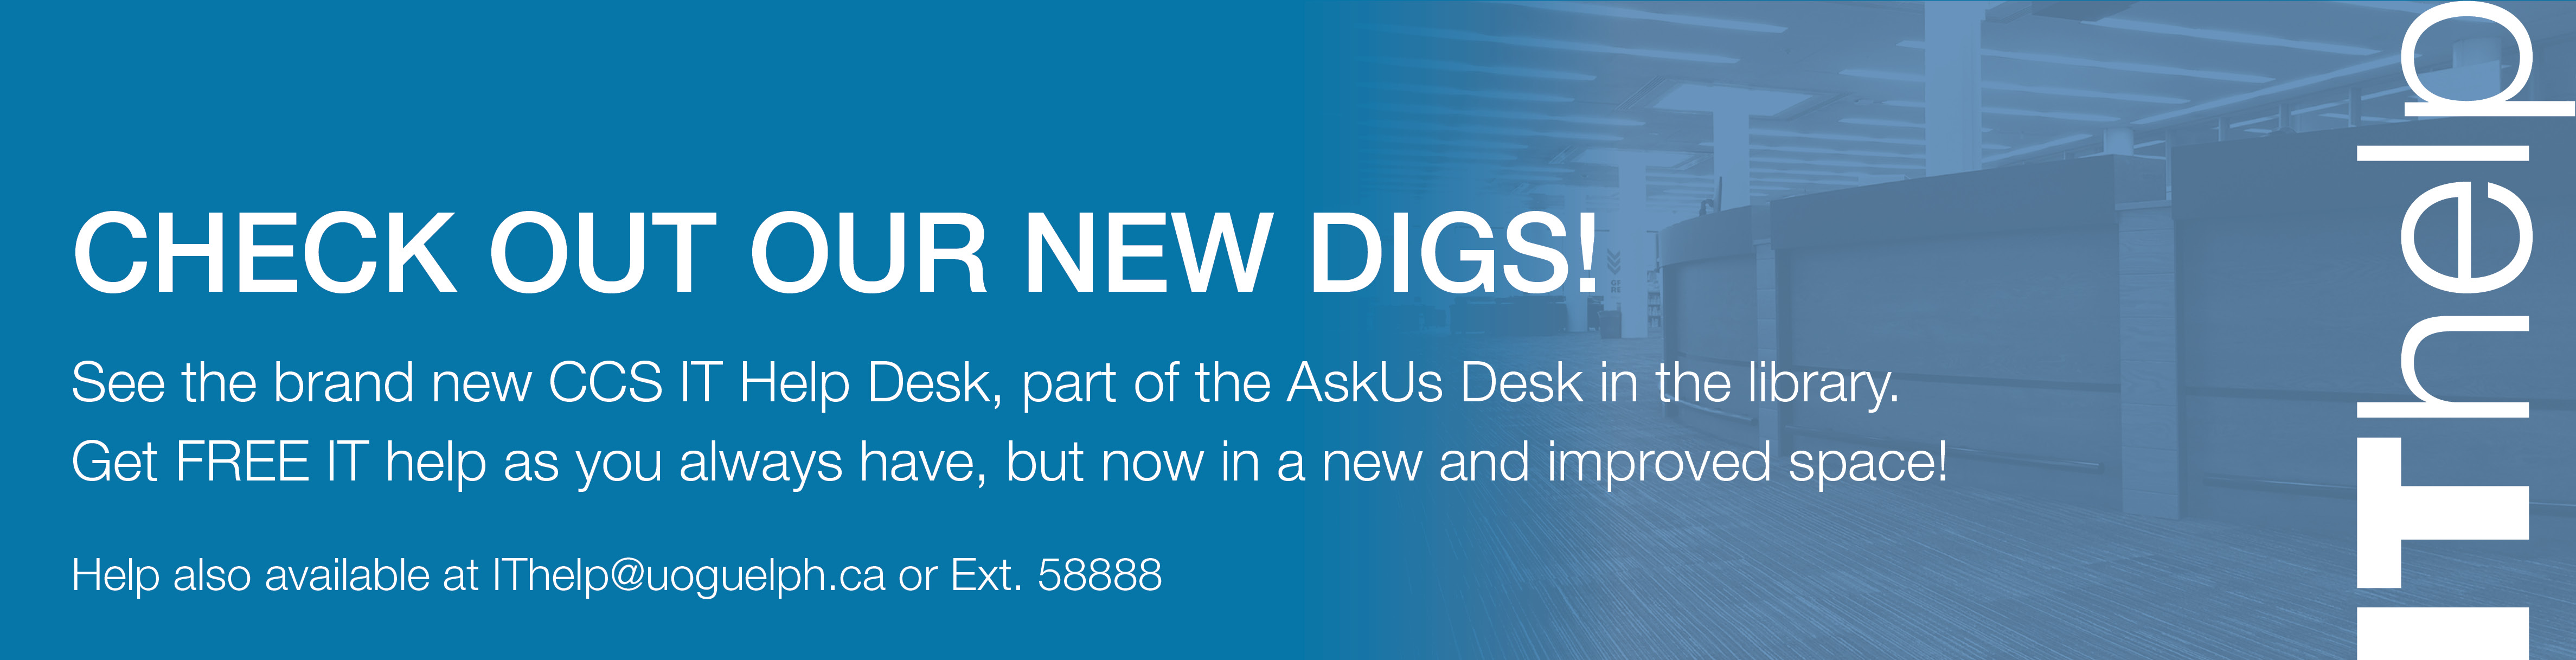 Check out our new digs! See the brand new CCS IT Help Desk, part of the AskUs Desk in the library. Get FREE IT help as you always have, but now in a new and improved space! Help also available via email at IThelp@uoguelph.ca or 519-824-4120 Ext. 58888.